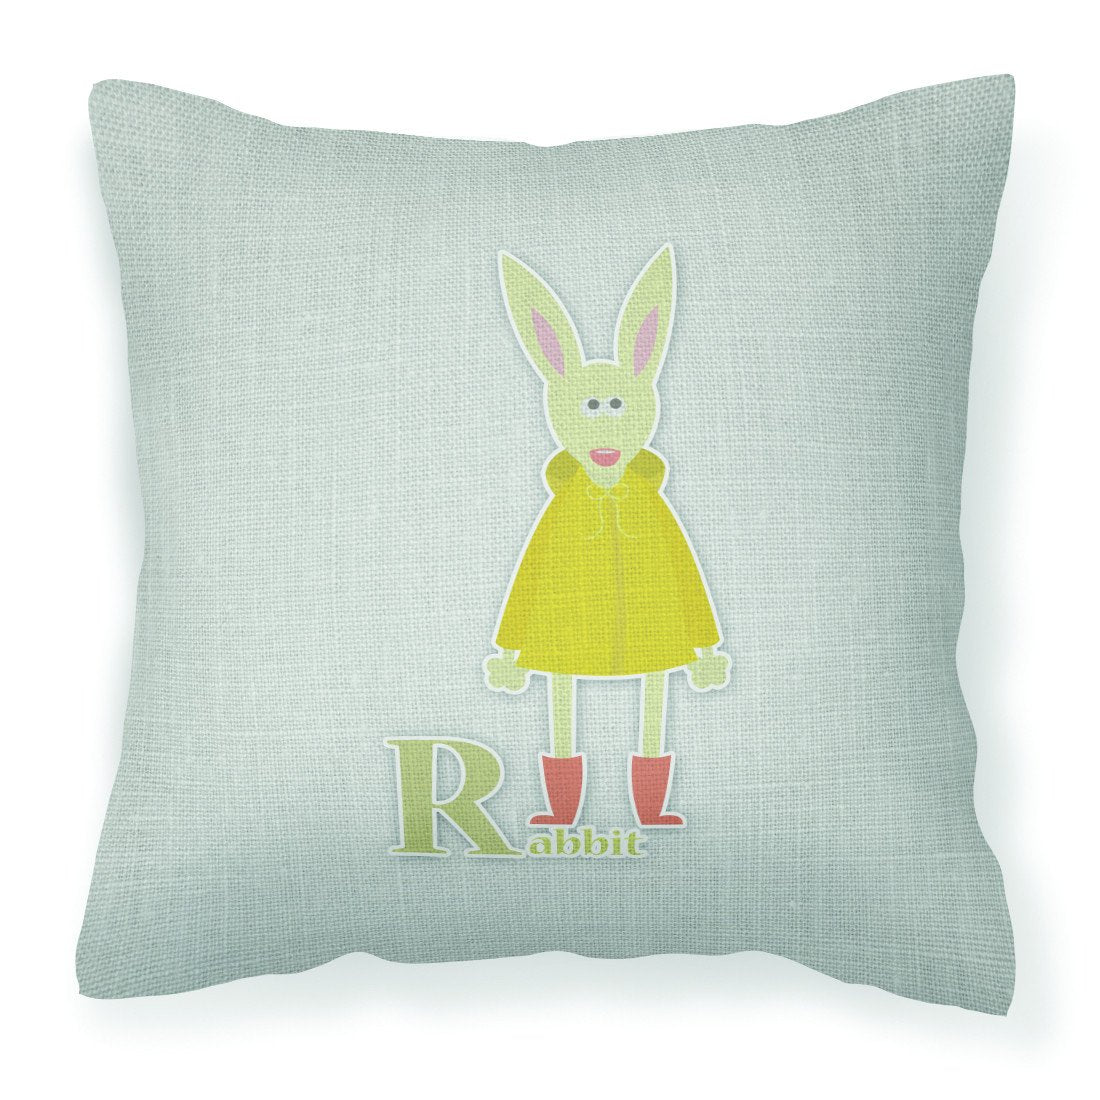 Alphabet R for Rabbit Fabric Decorative Pillow BB5743PW1818 by Caroline's Treasures